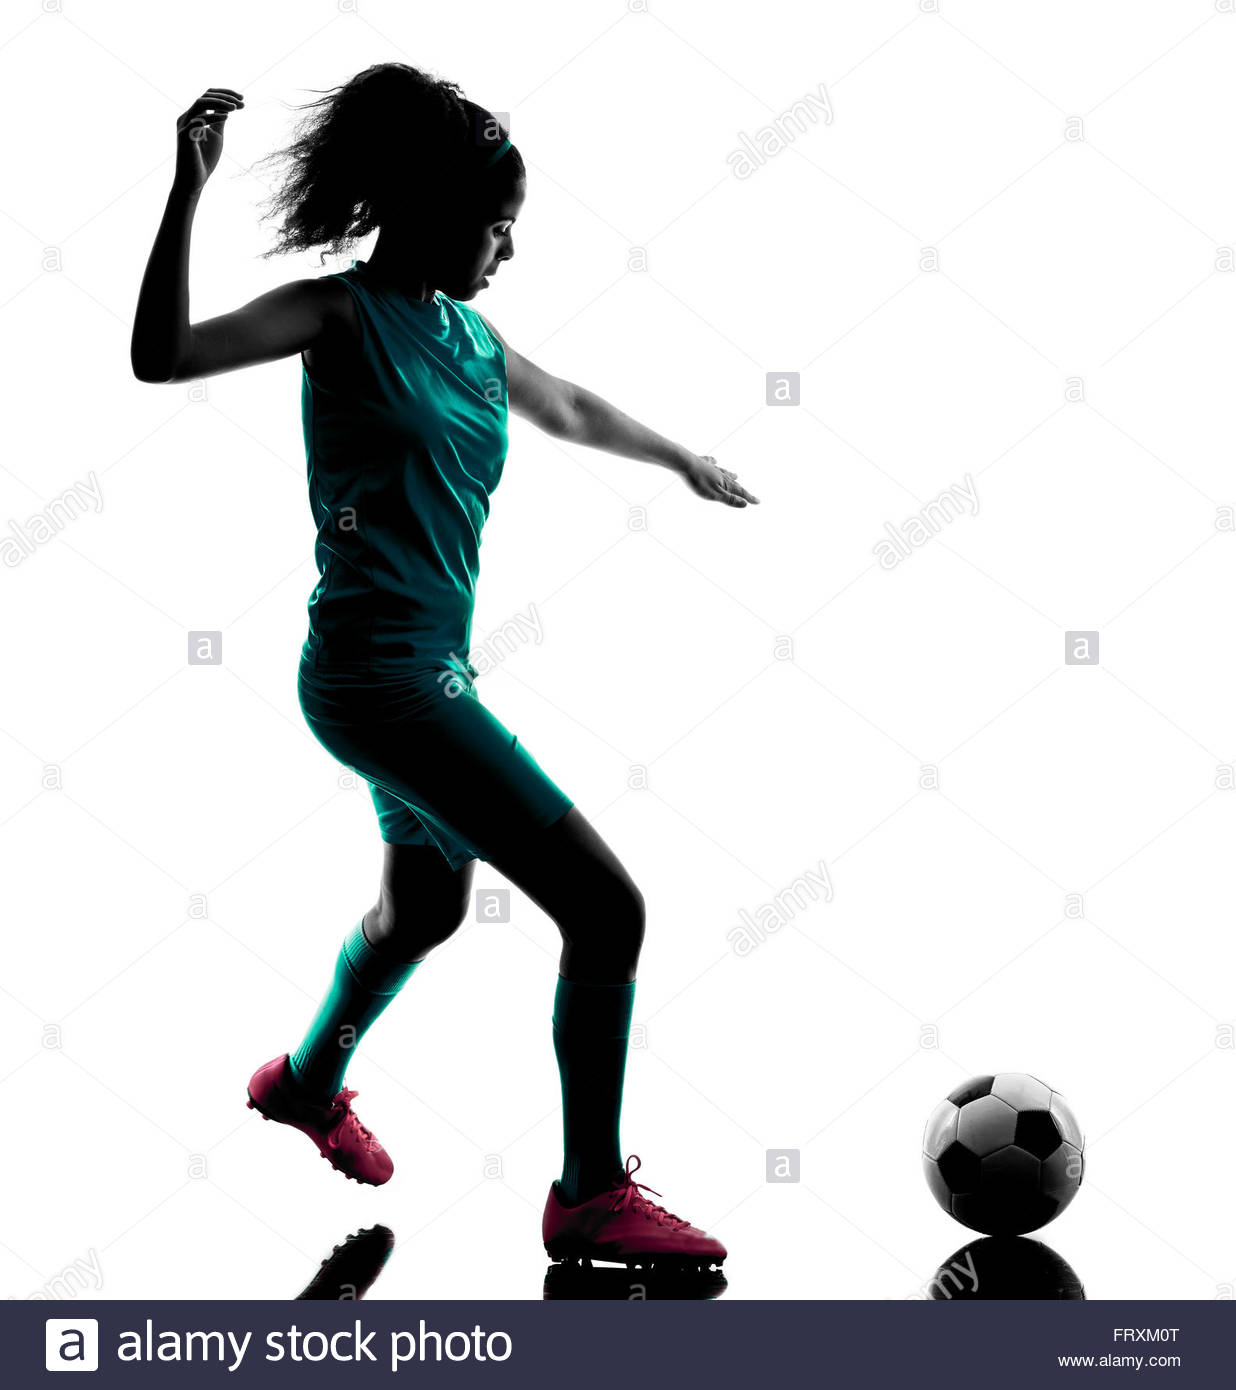 1236x1390 One Teenager Girl Child Playing Soccer Player In Silhouette